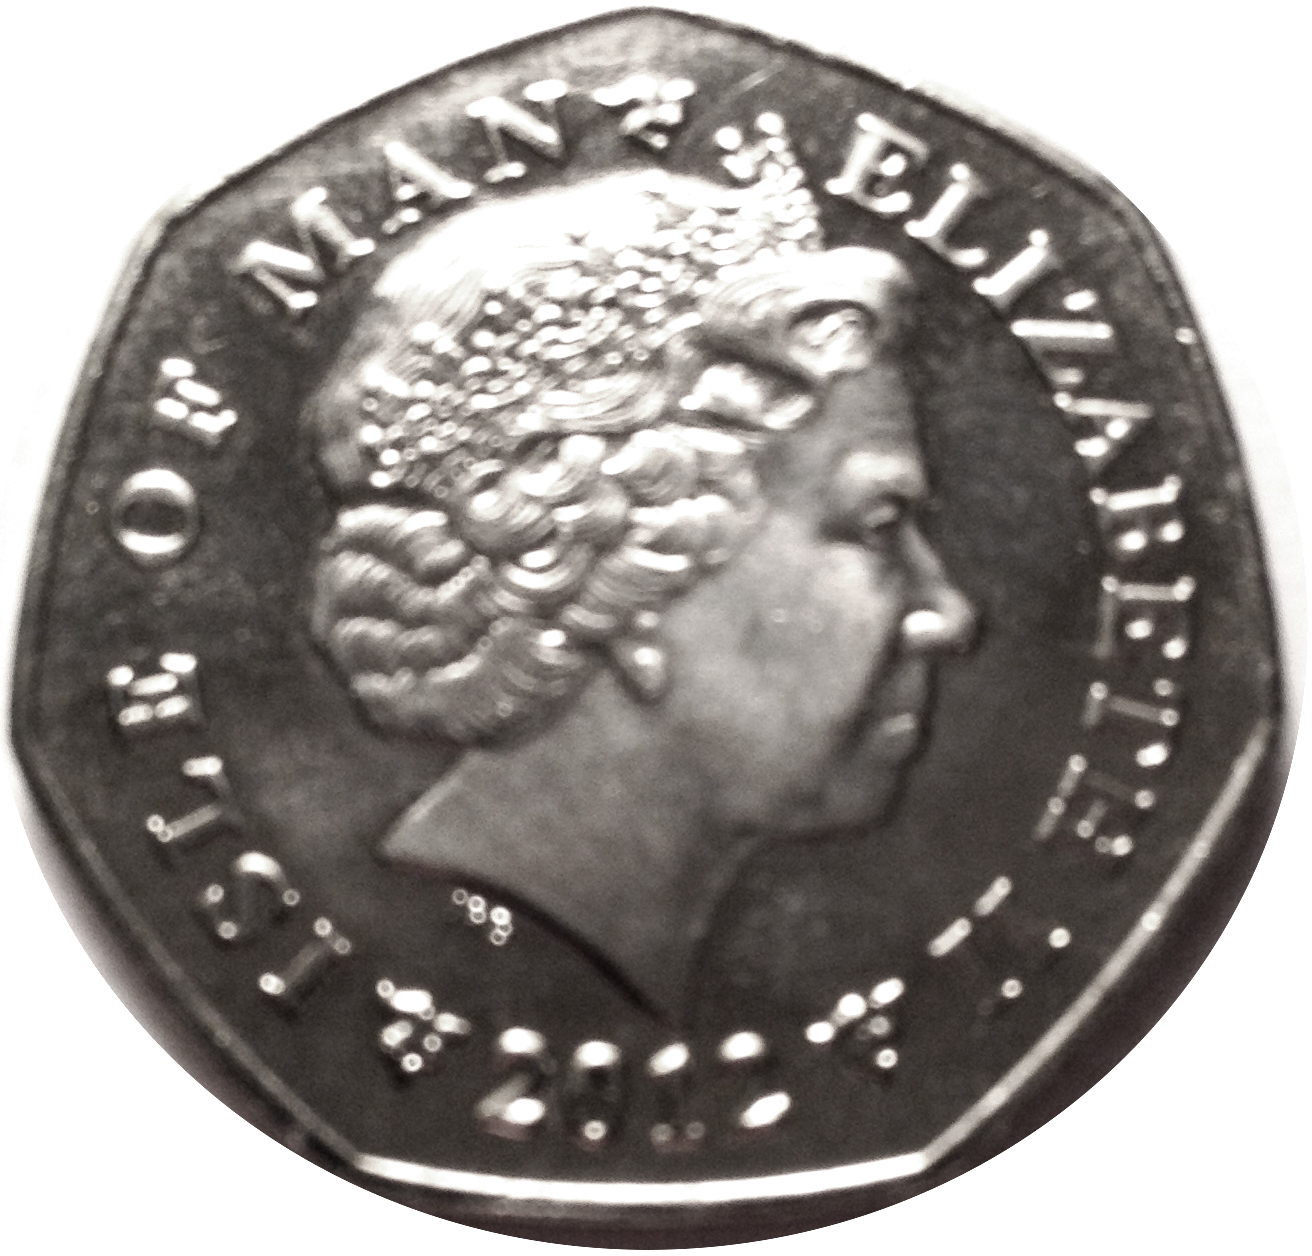 ISLE OF MAN 50 PENCE UNC COIN 2012 YEAR CHRISTMAS